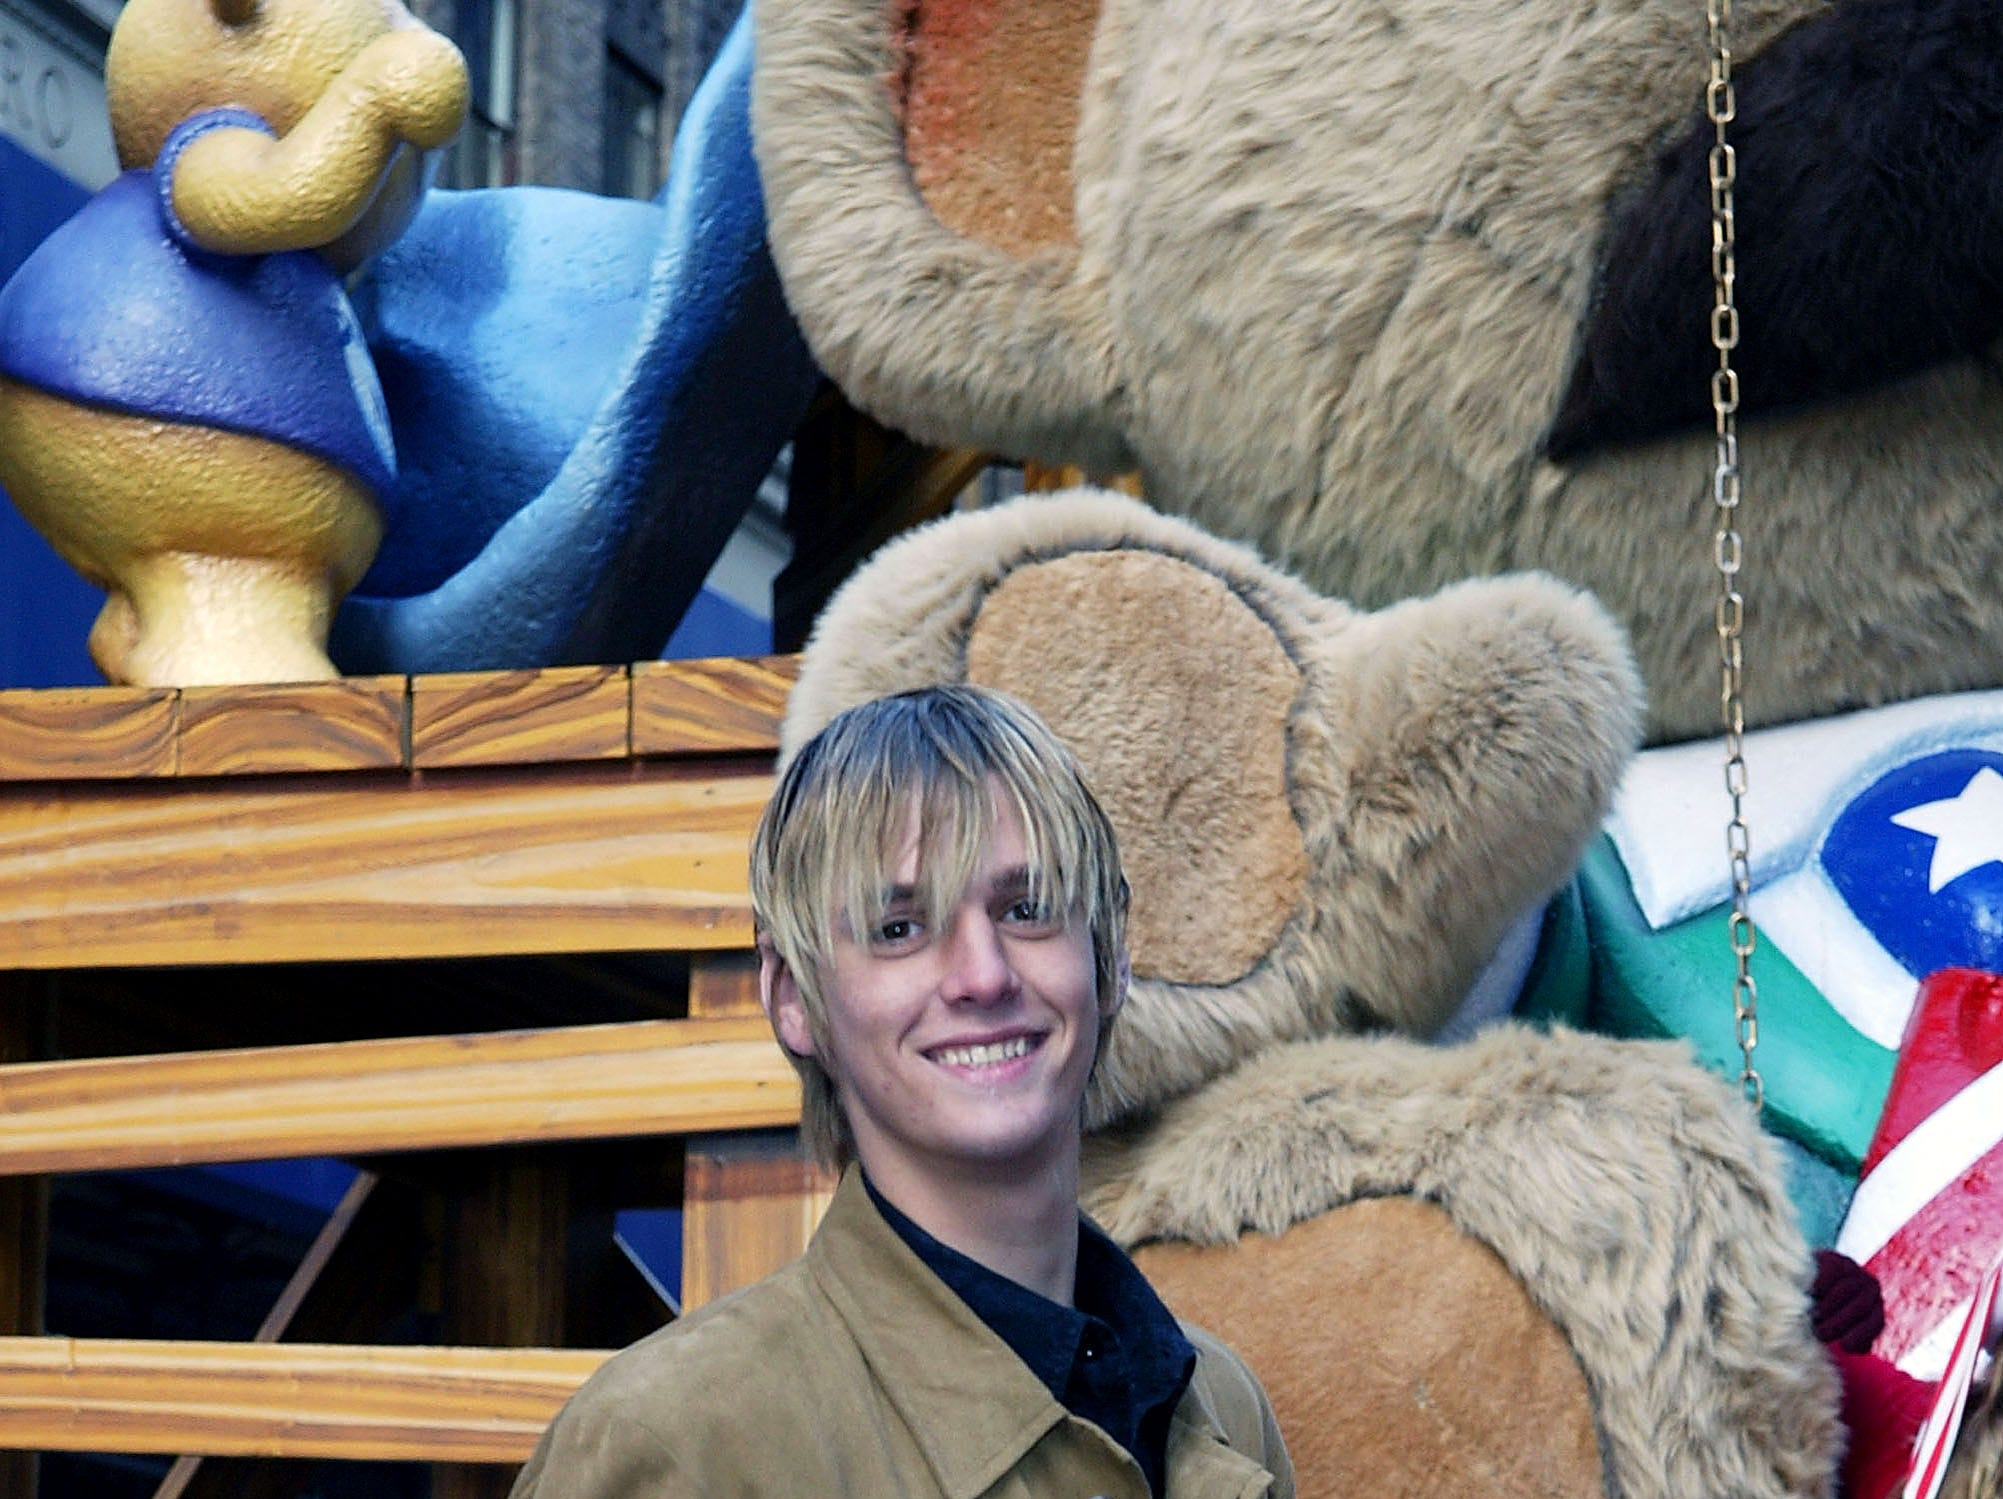 NEW YORK - NOVEMBER 27: Singer Aaron Carter participates in The 77th Annual Macys Thanksgiving Day Parade on November 27 2003 in New York City.   (Photo by Matthew Peyton/Getty Images) *** Local Caption *** Aaron Carter